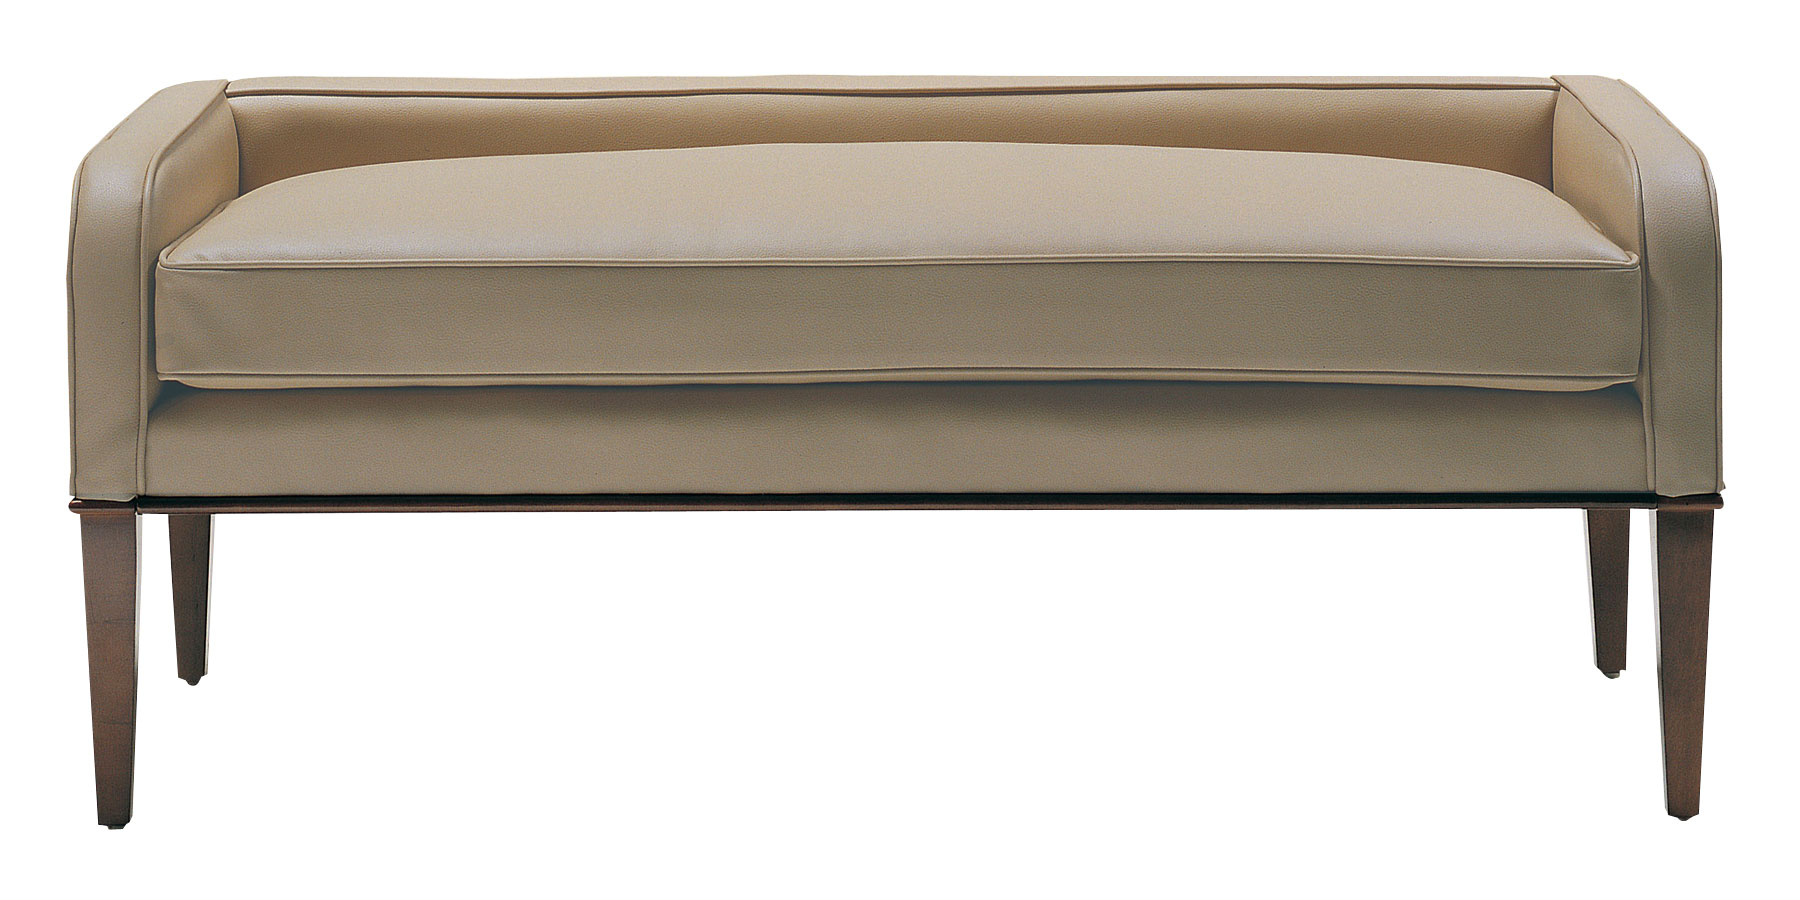 Leander Designer Style Leather Bench Ottomans Amp Benches